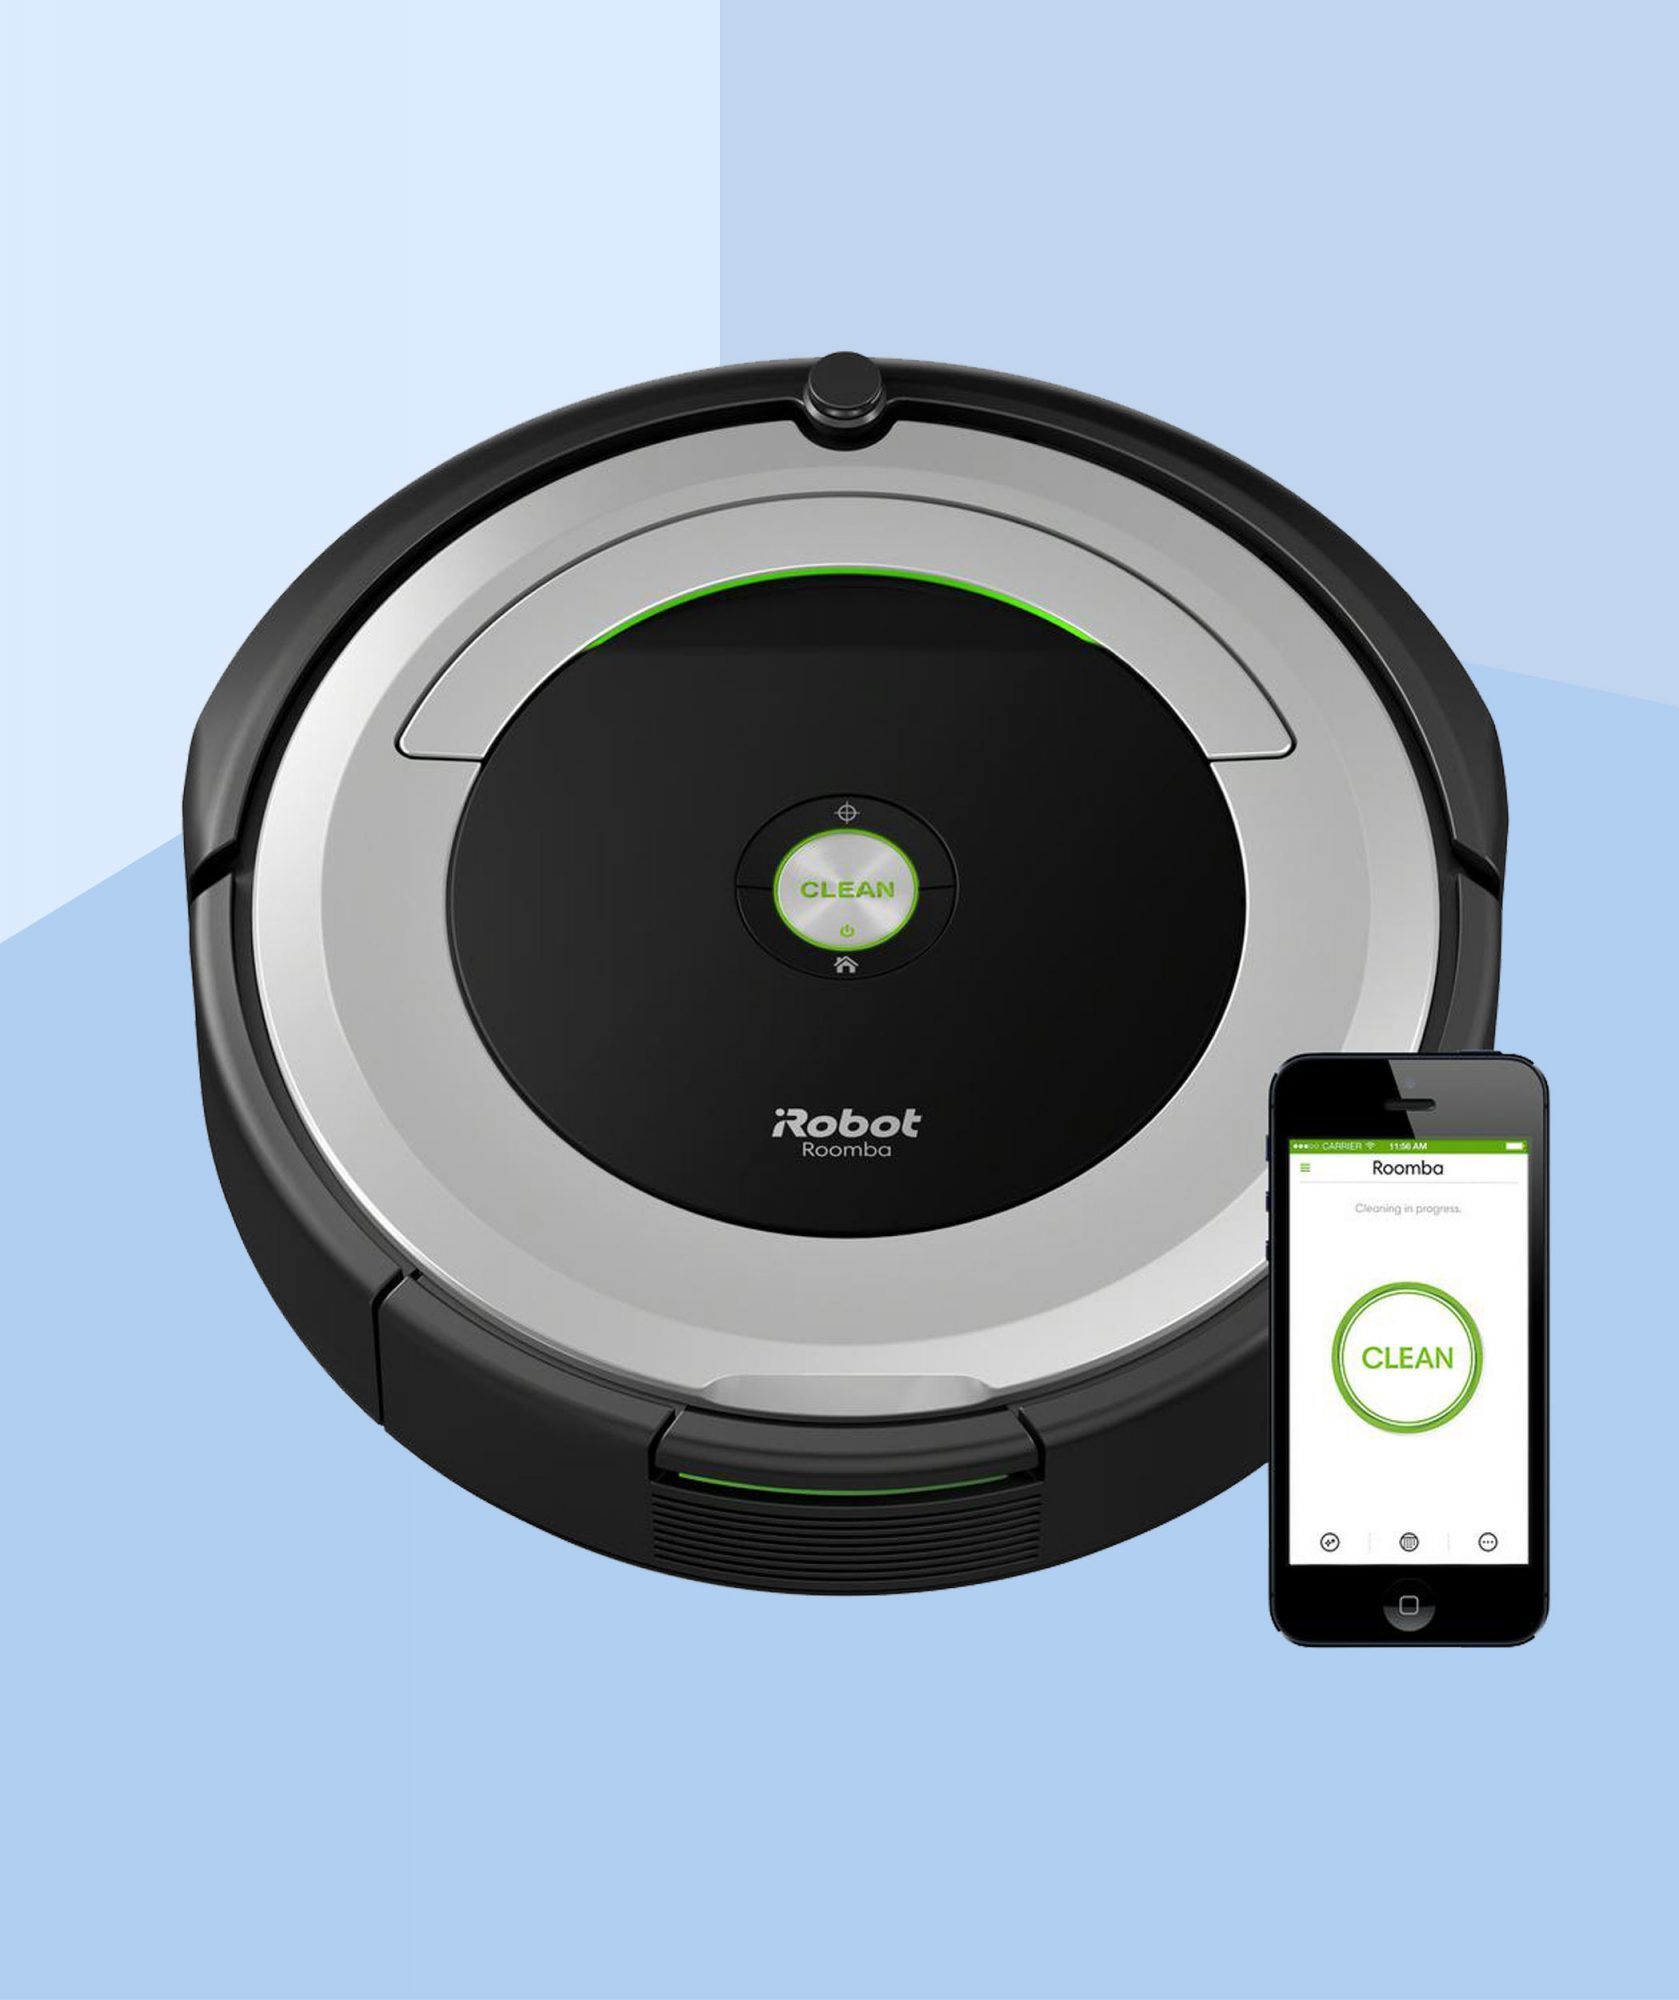 Amazon's Most Popular Roomba Robot Vacuums Are Already on Sale Weeks Ahead of Prime Day